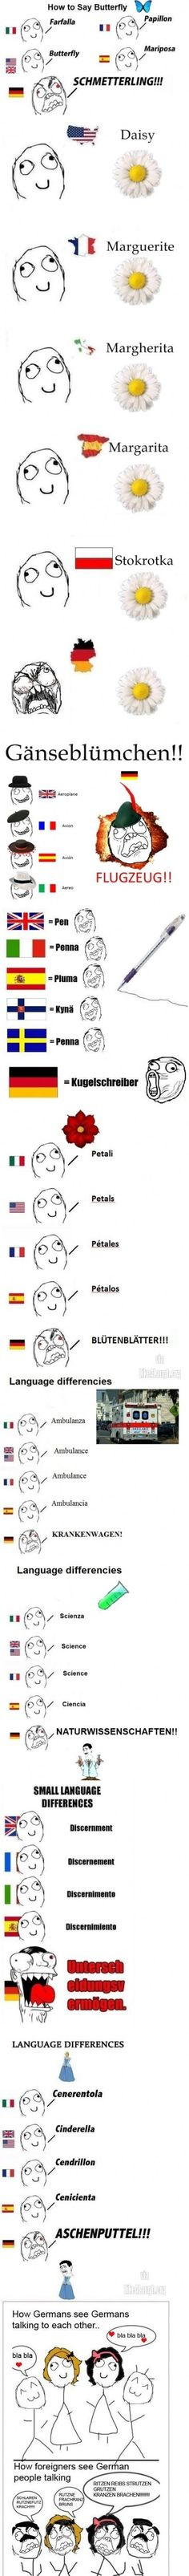 100% accurate ! I took german in high school and that's pretty much what I sounded like.